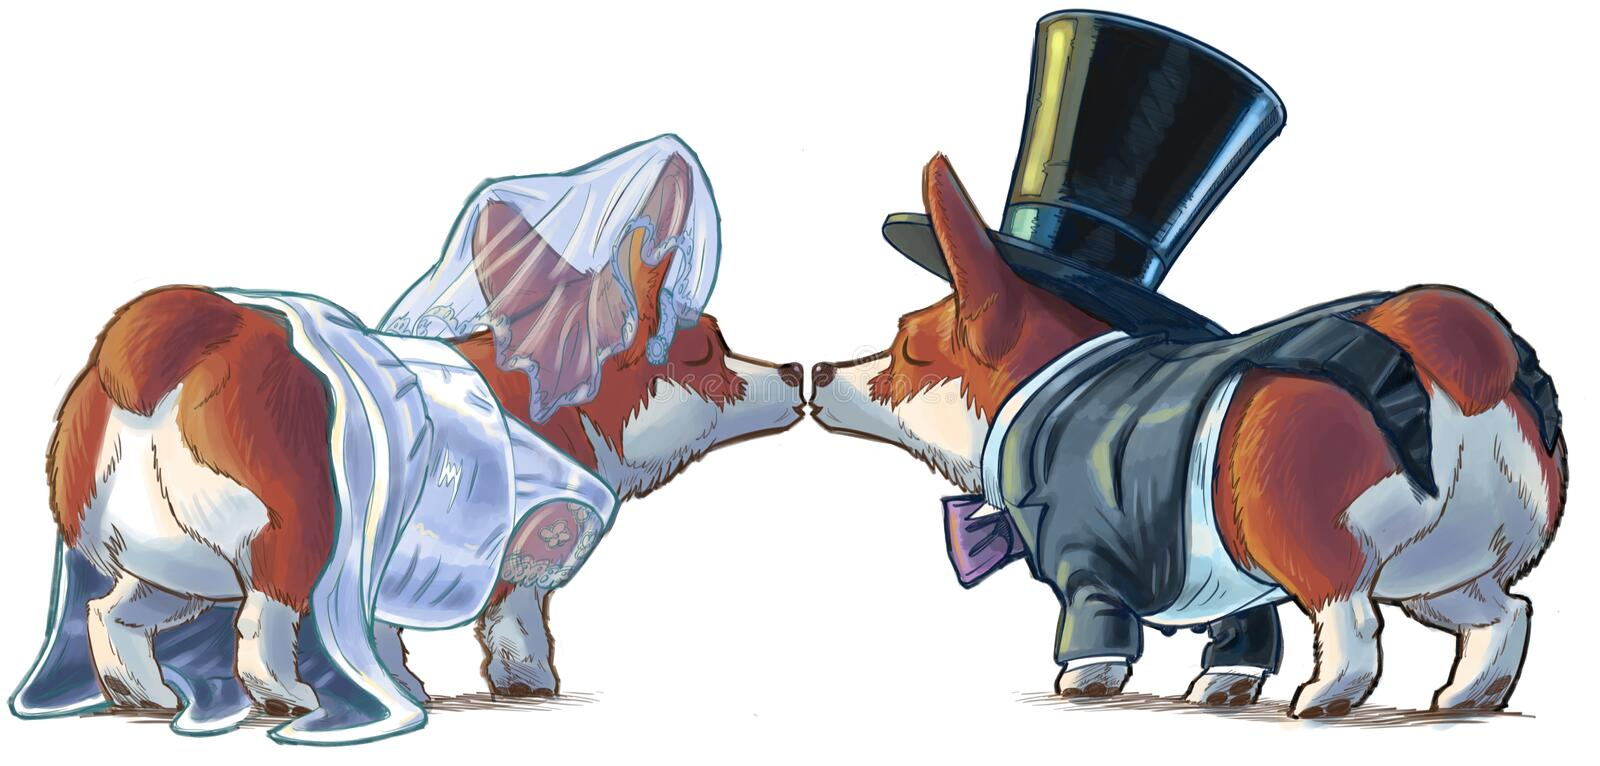 Novia y novio Kissing Cartoon Illustration del Corgi ilustración del vector